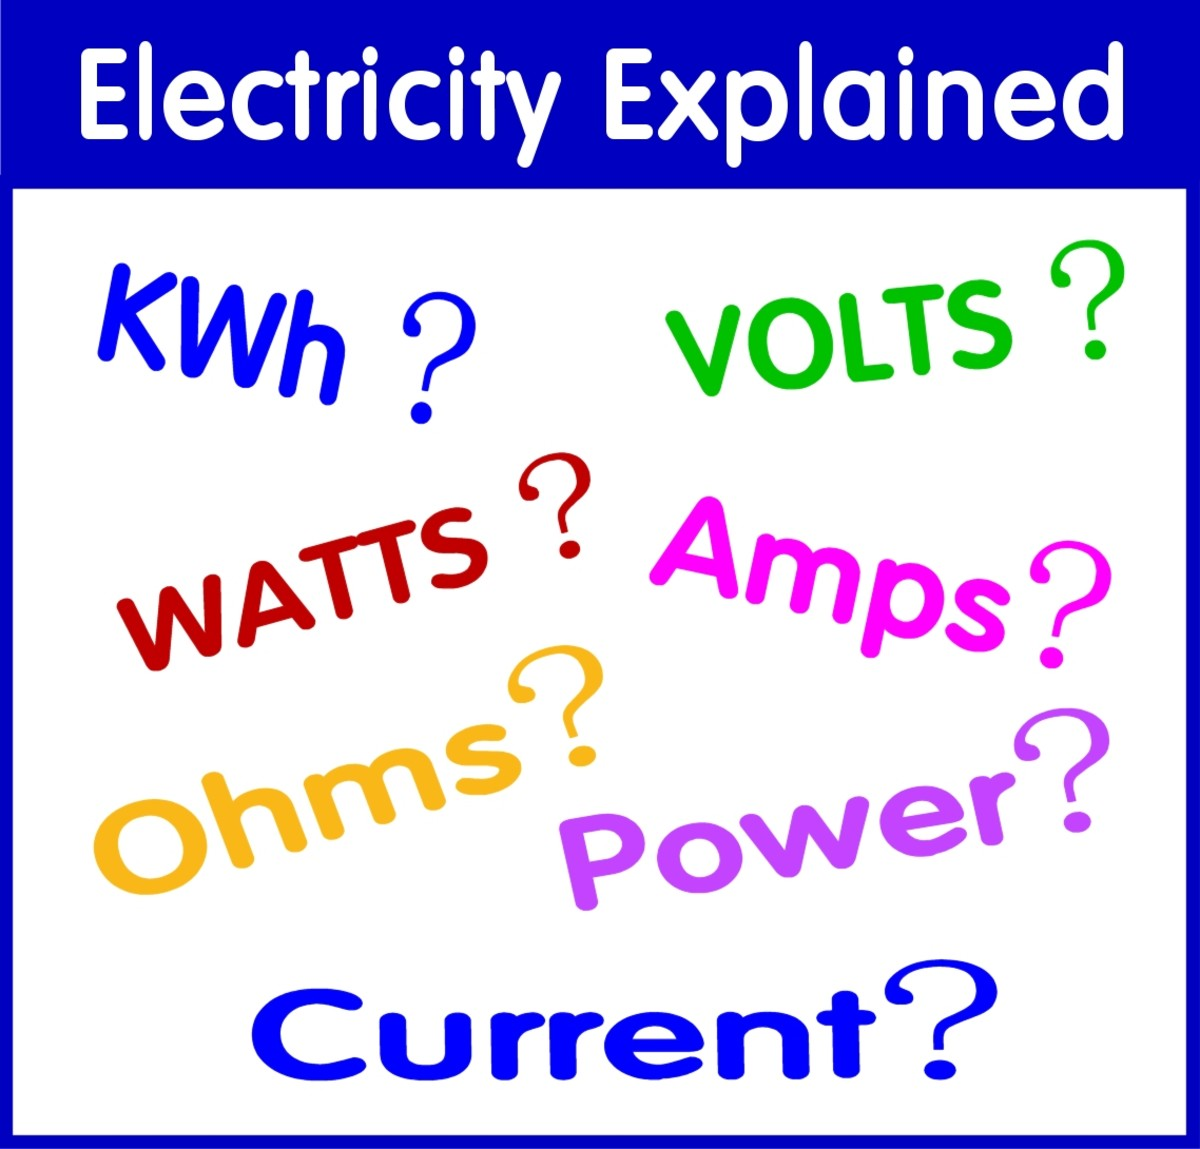 Understanding Electricity:  Volts, Amps, Watts, Kilowatt Hours (kWh), Ohms and Electrical Appliances